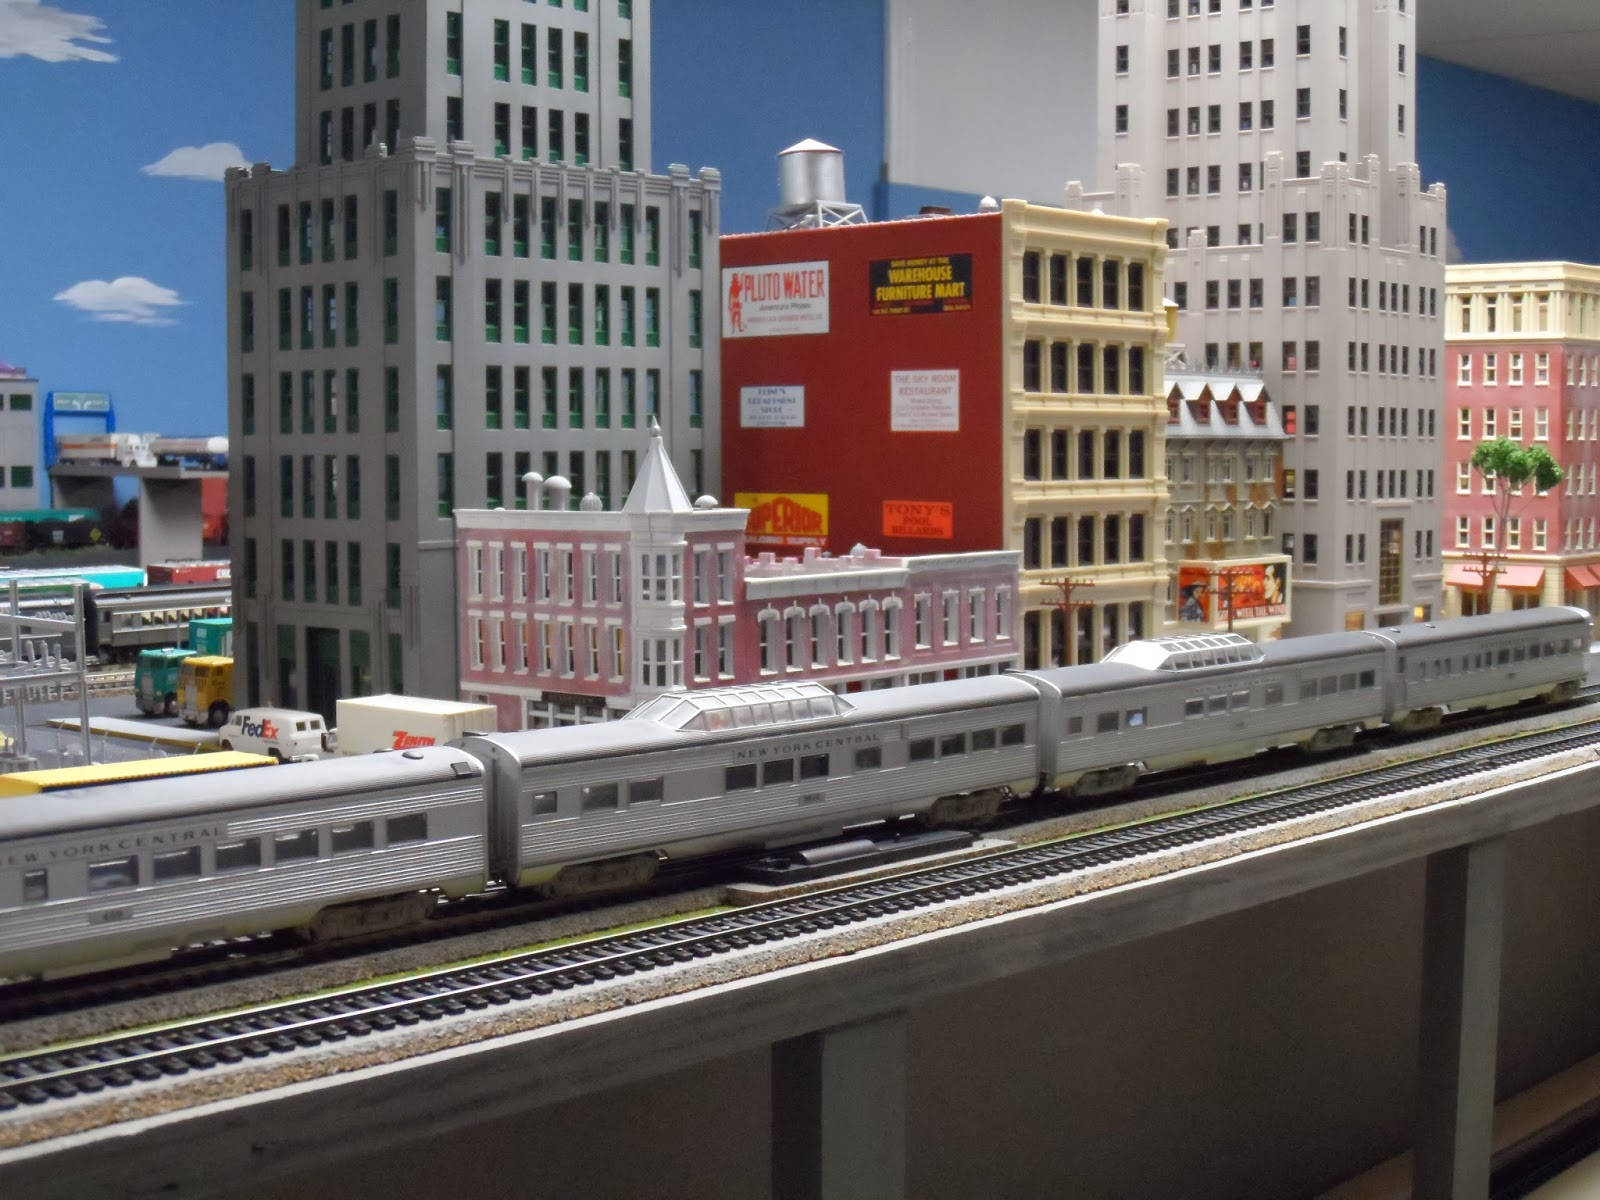 New York Central Train Layout: Updated New York Central